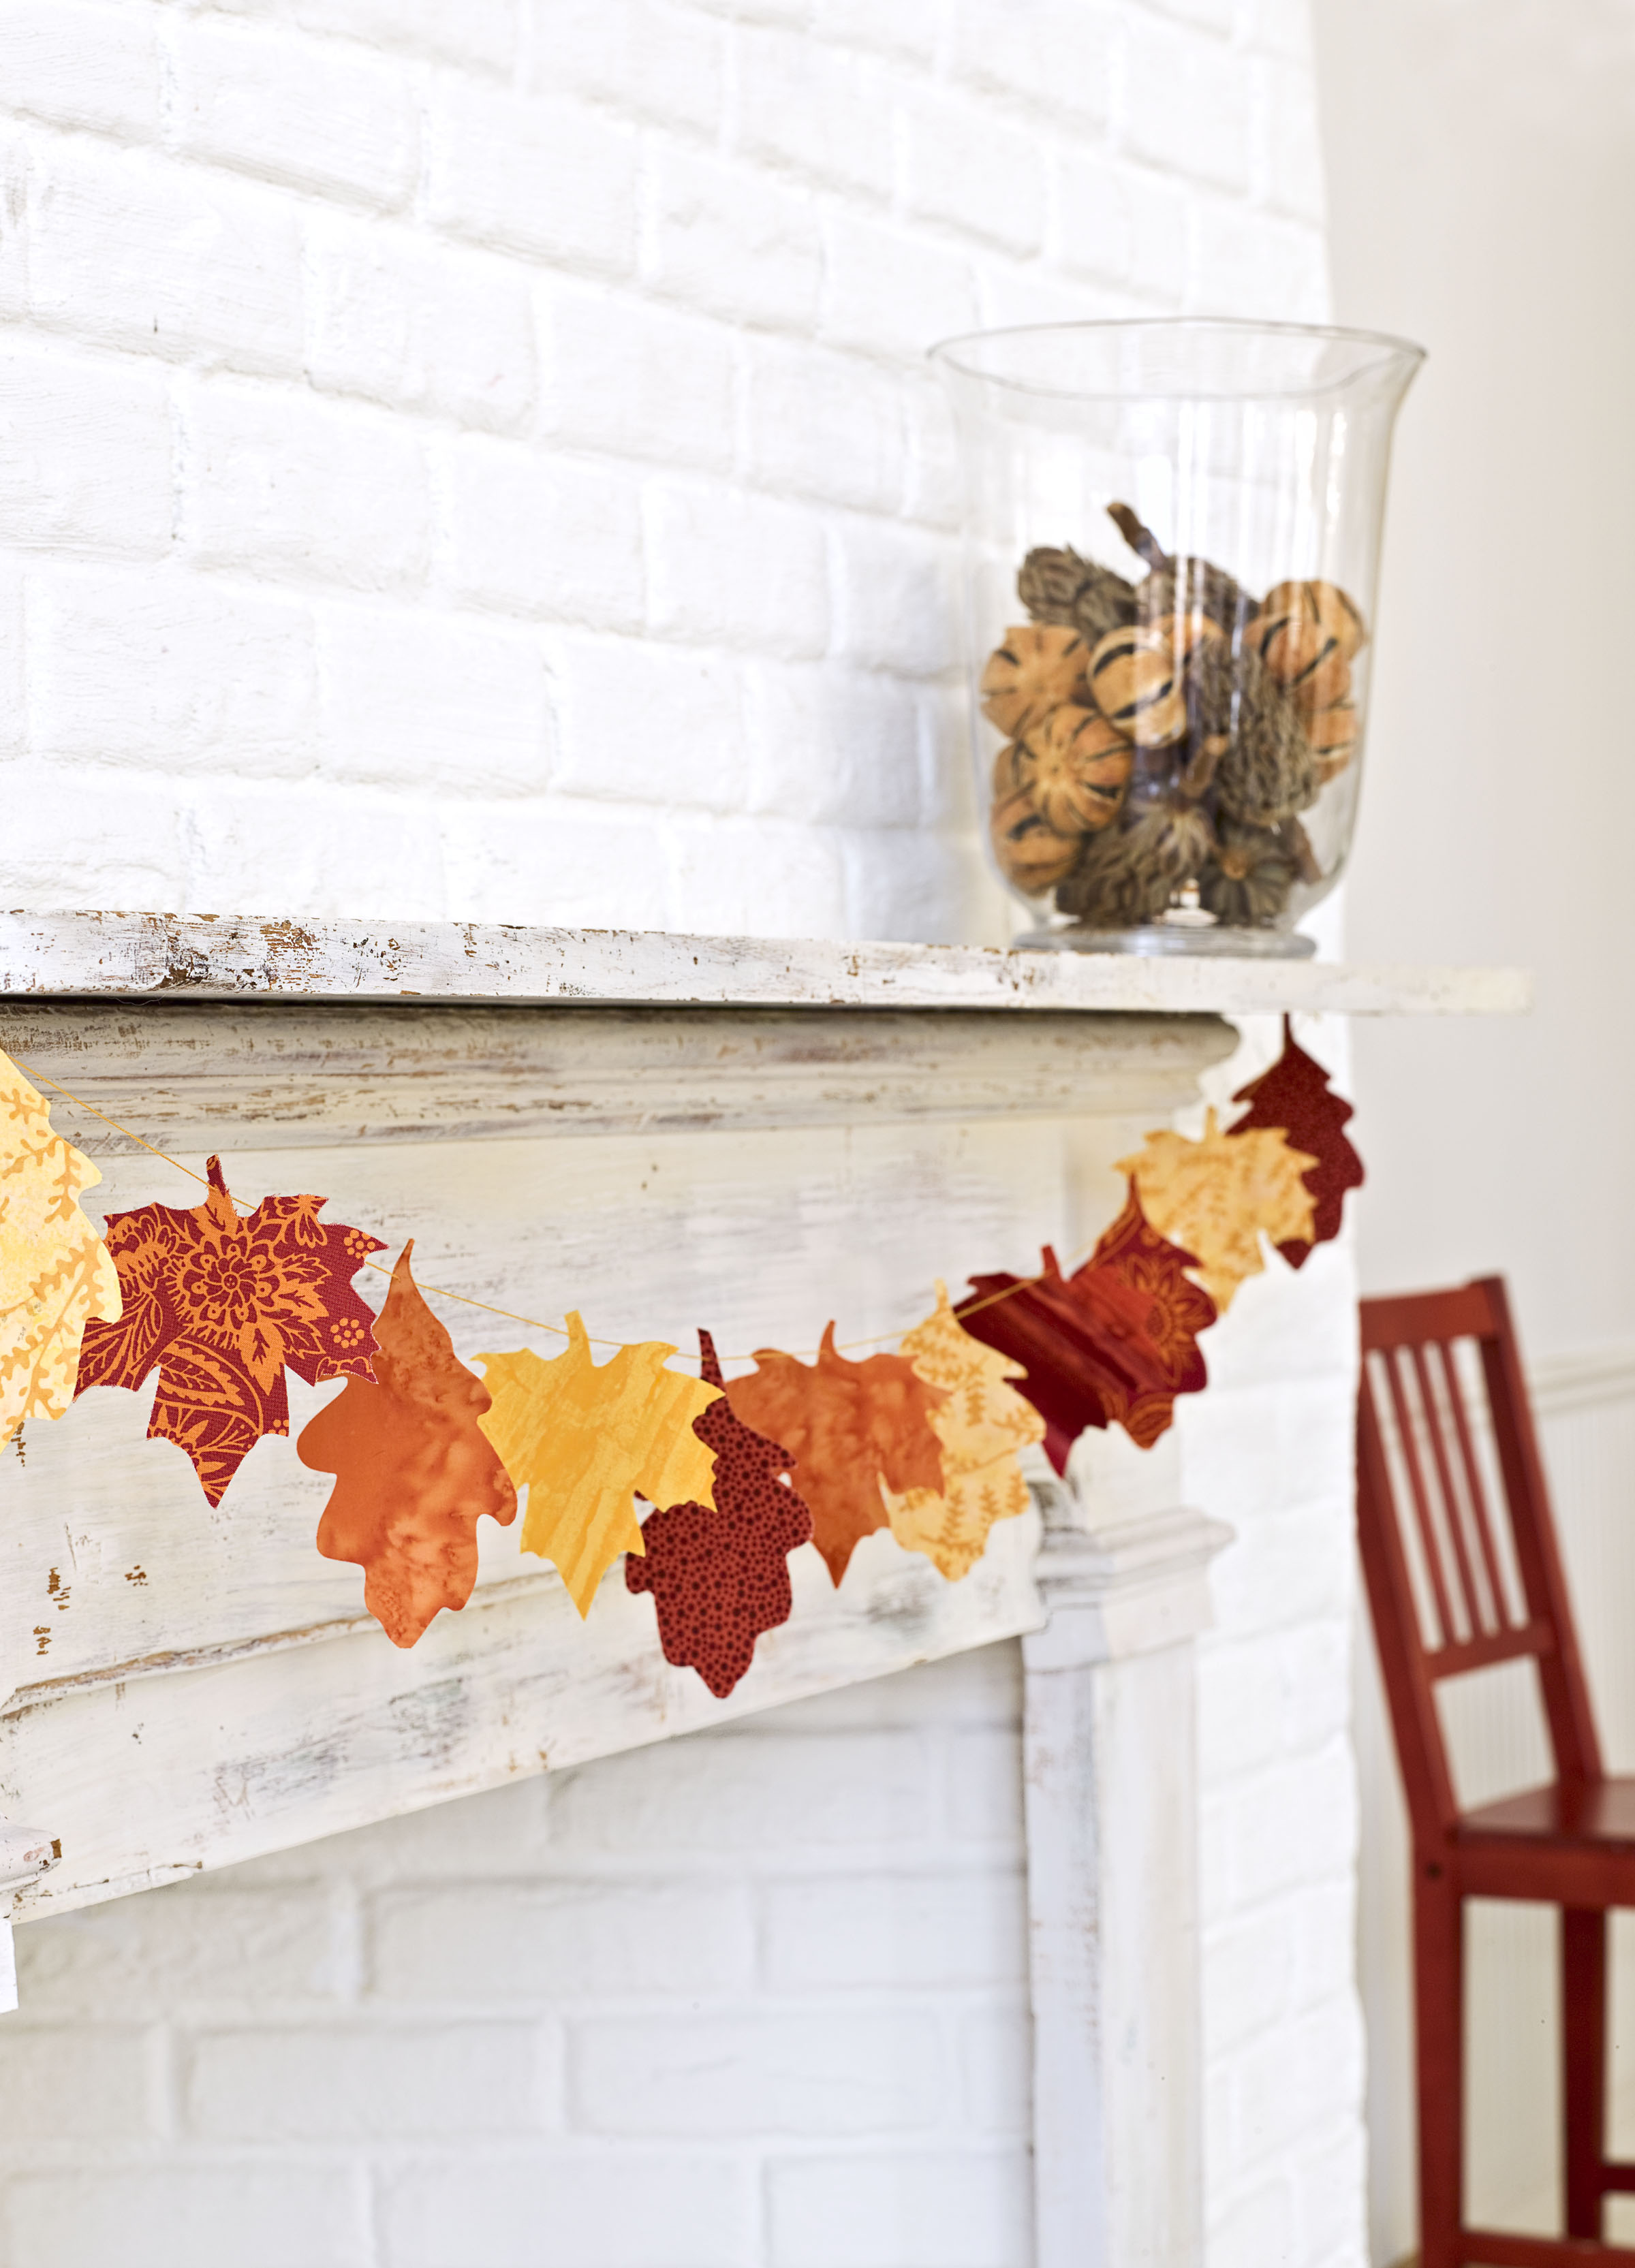 35 Best Fall Home Decorating Ideas 2017 - Autumn Decorations for ...